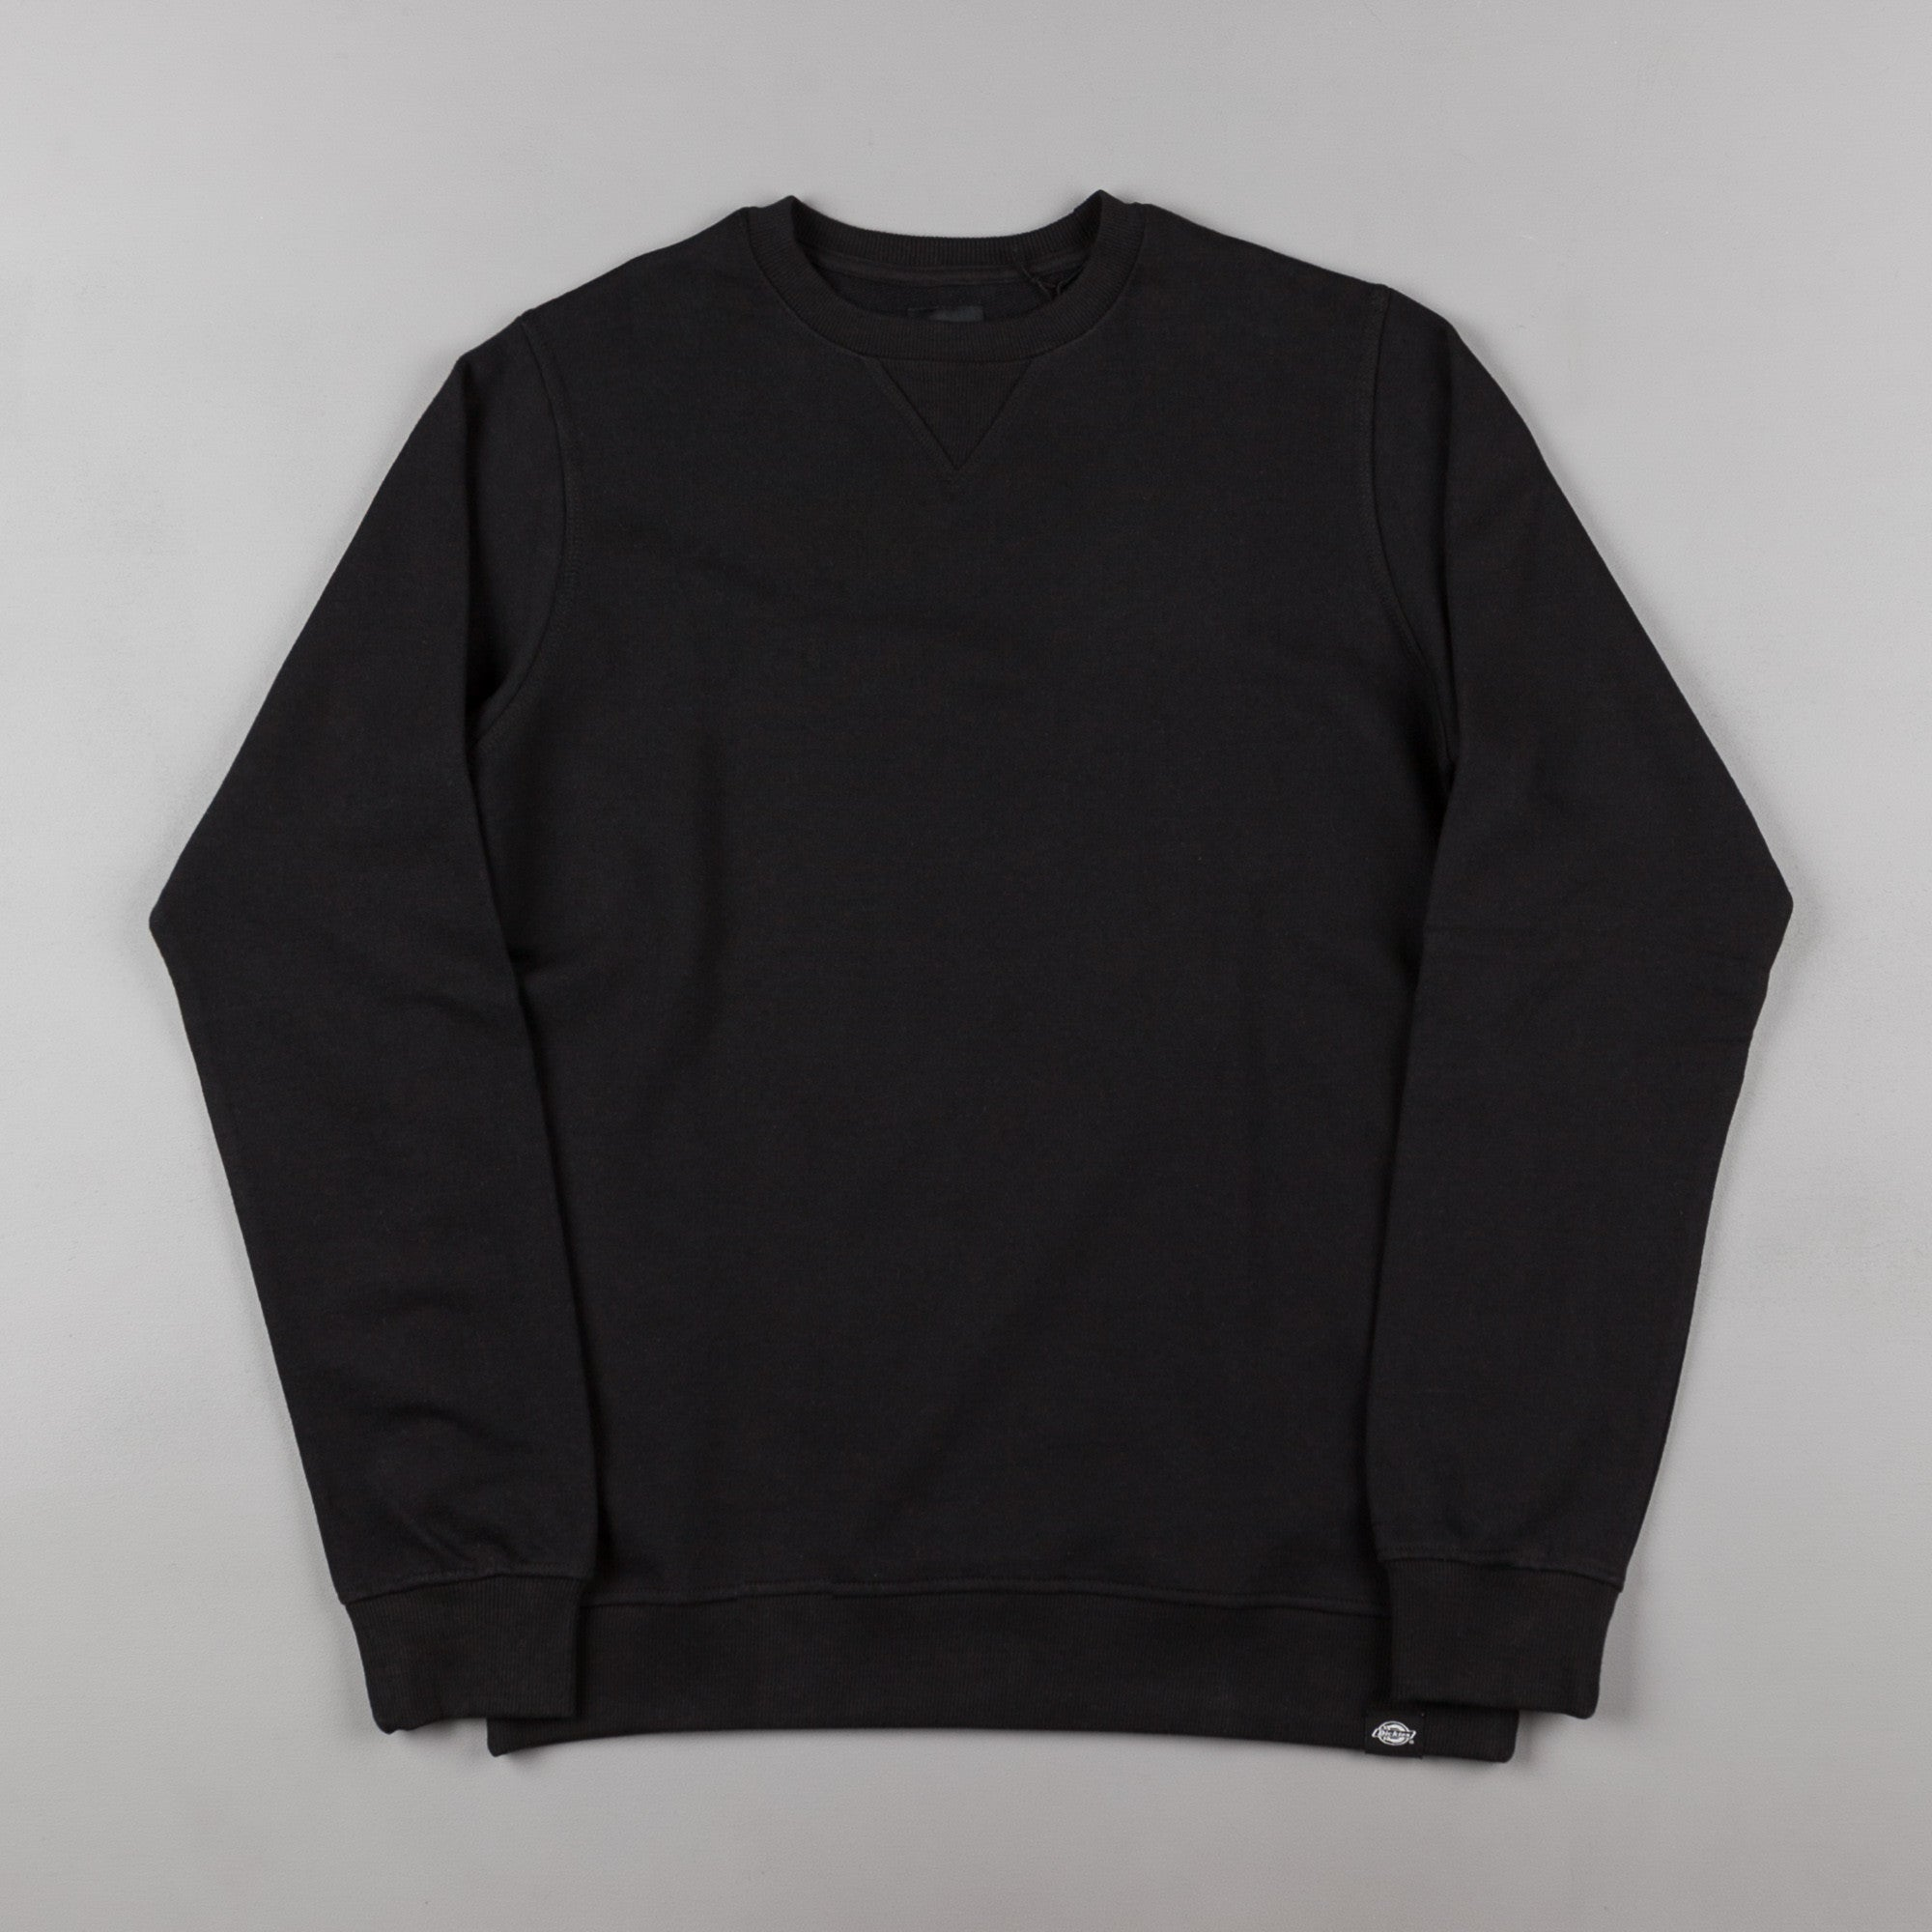 Dickies Washington Crew Neck Sweatshirt - Black